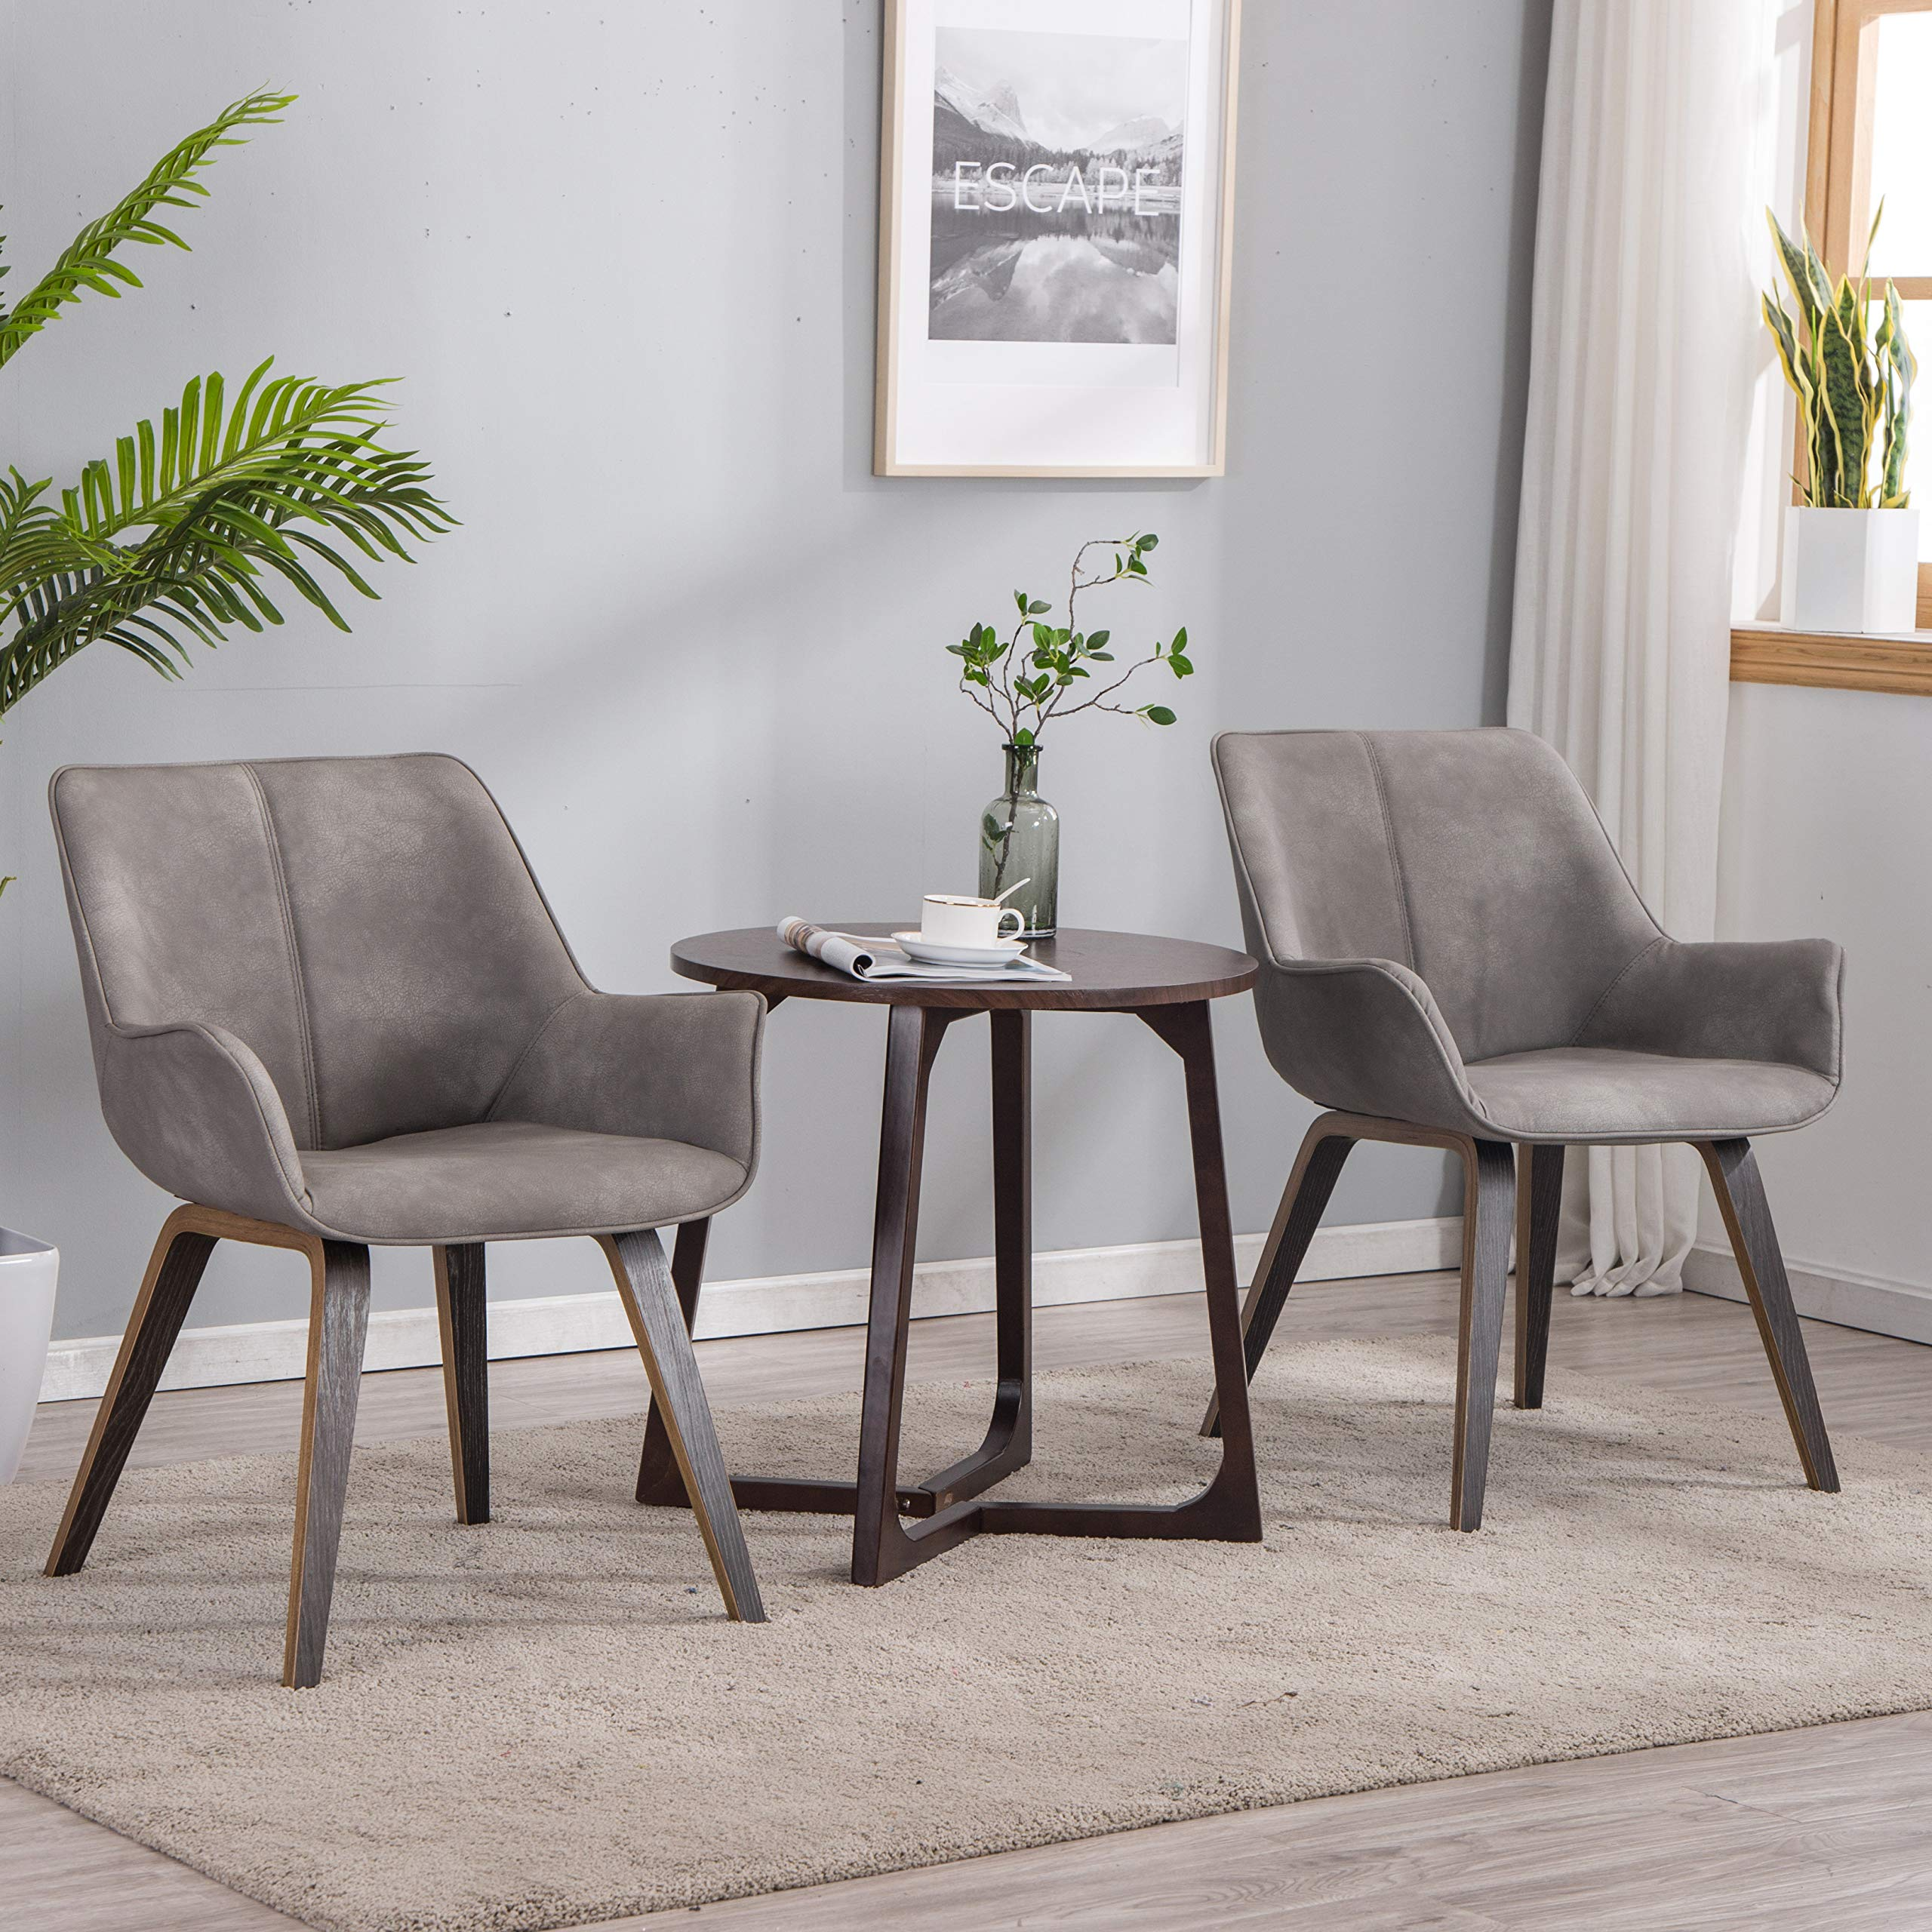 YEEFY Gray Leather Living Room Room Chairs with arms Contemporary Living Room Chairs Set of 2 (Ashen) by YEEFY